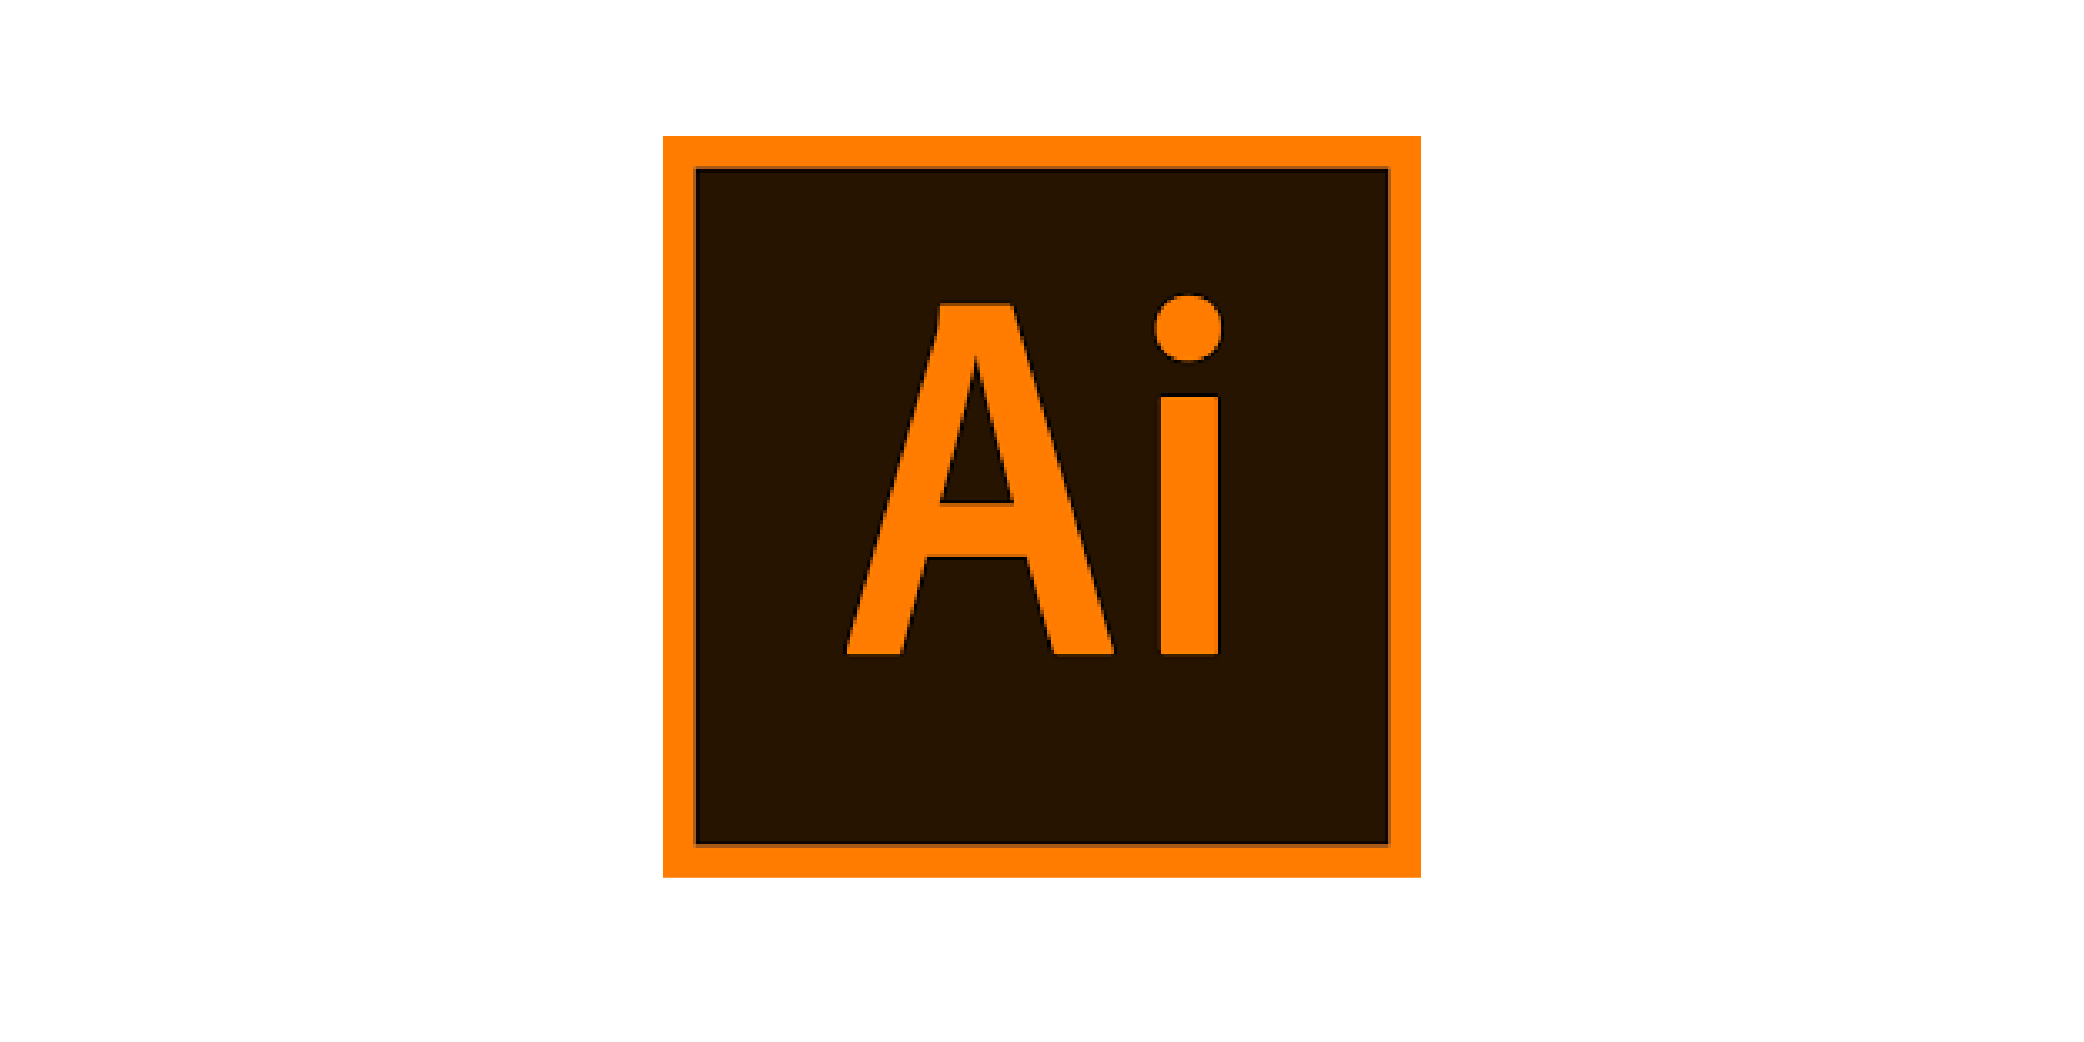 Adobe Illustrator CC - What I use to design patterns and wallpapers